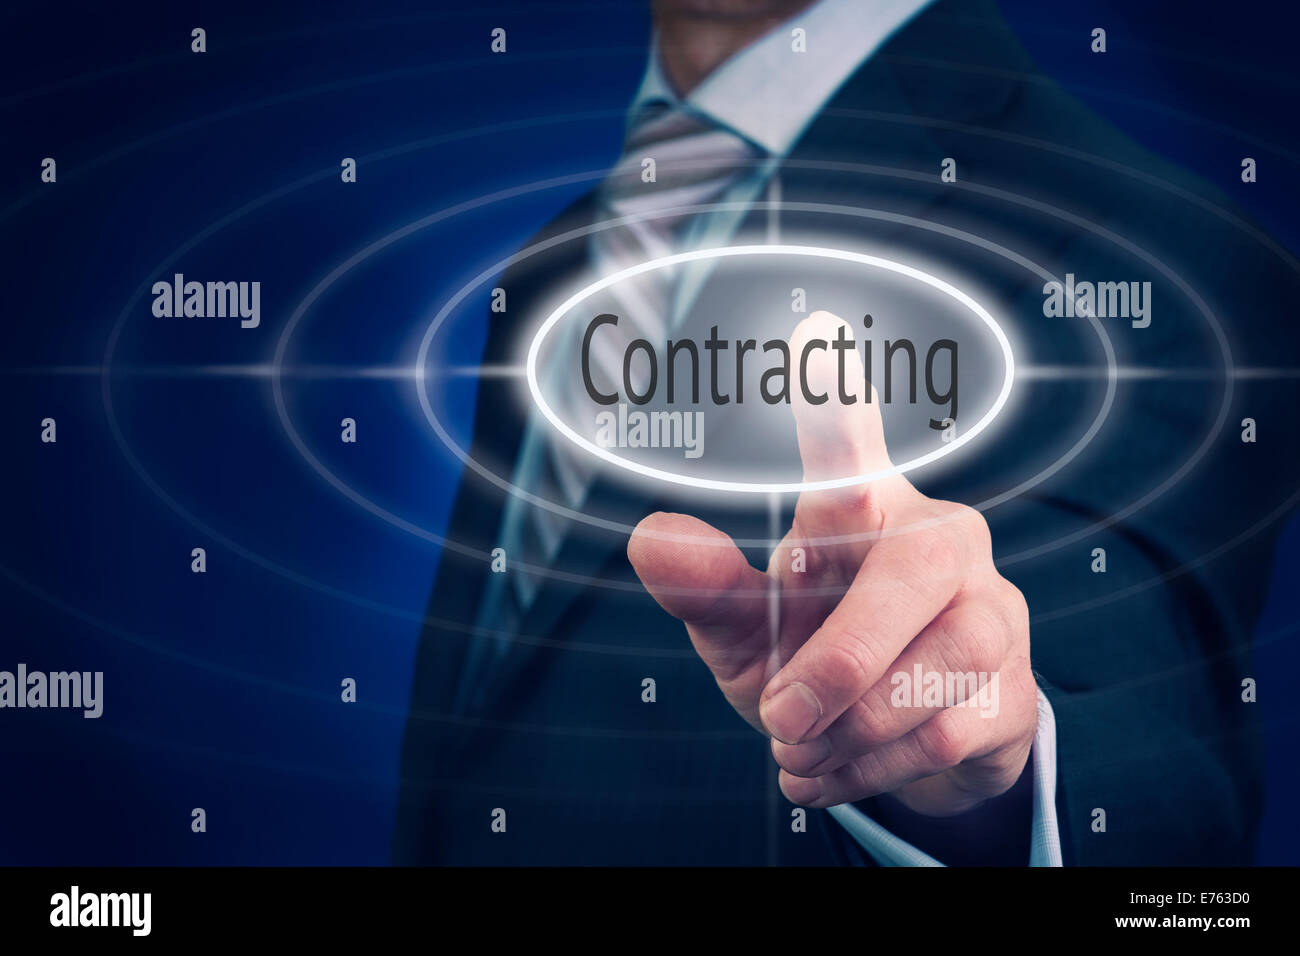 Businessman pressing a Contracting concept button. - Stock Image